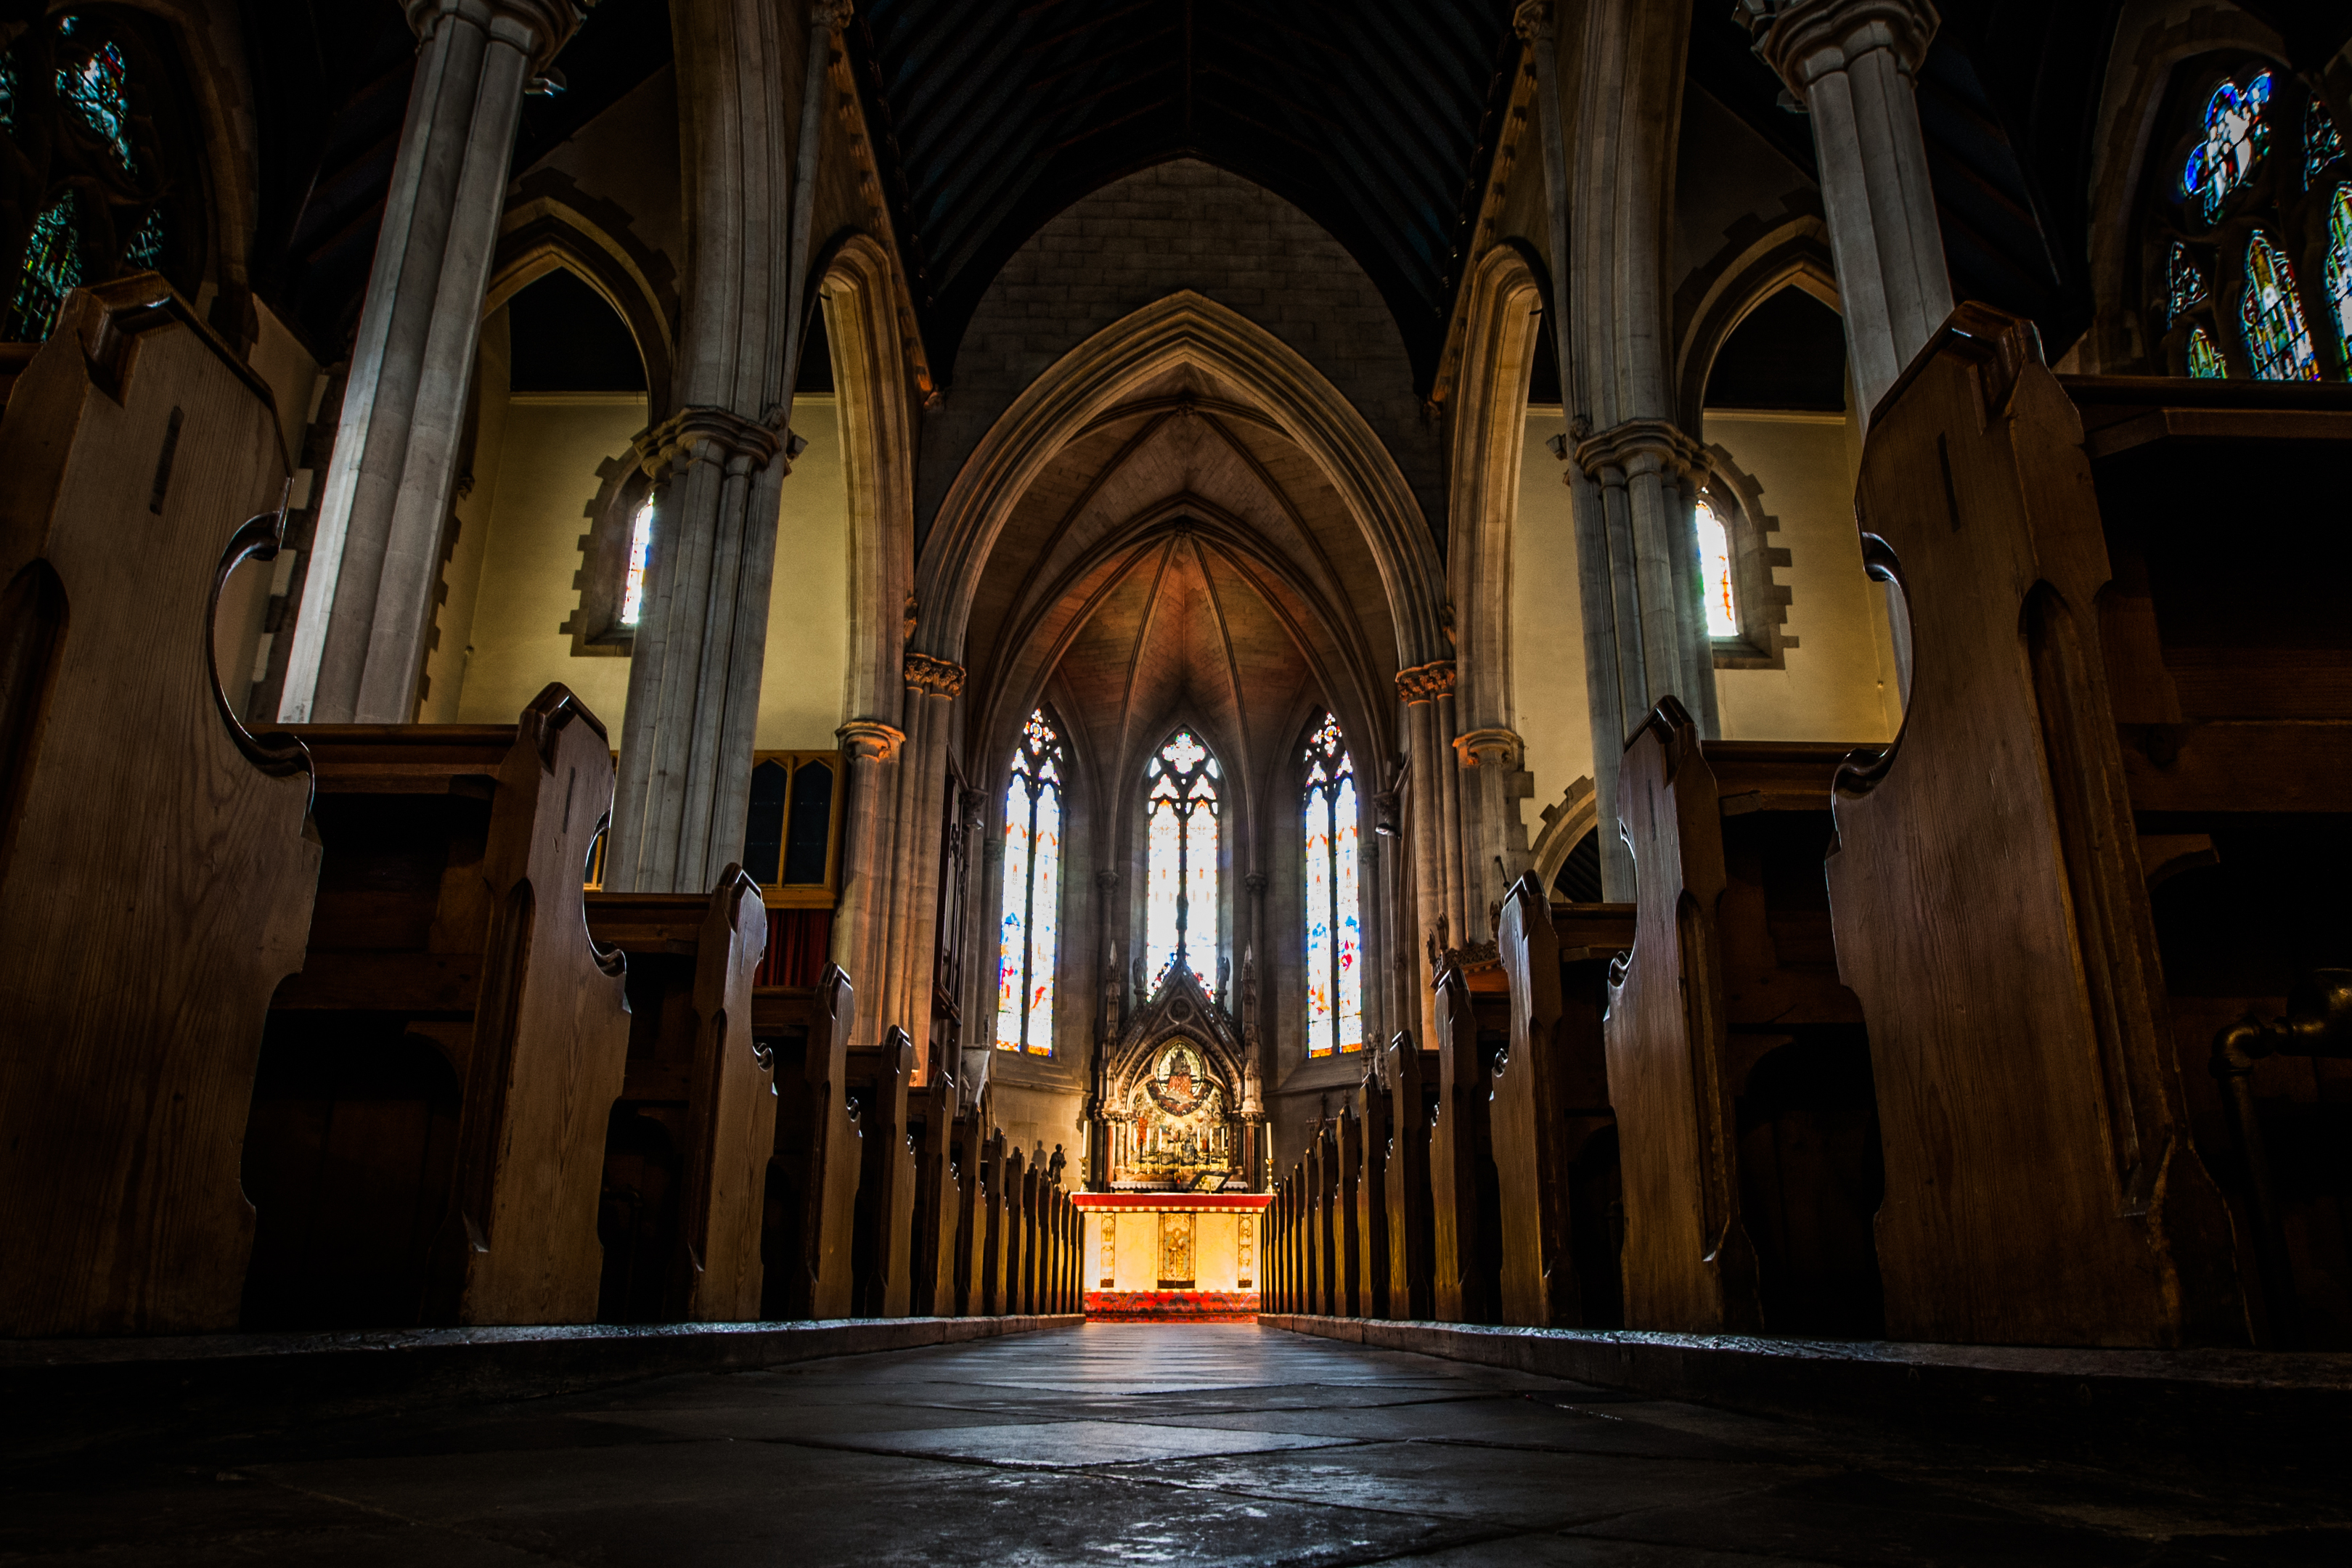 St Paul's Episcopal Cathedral in Dundee.